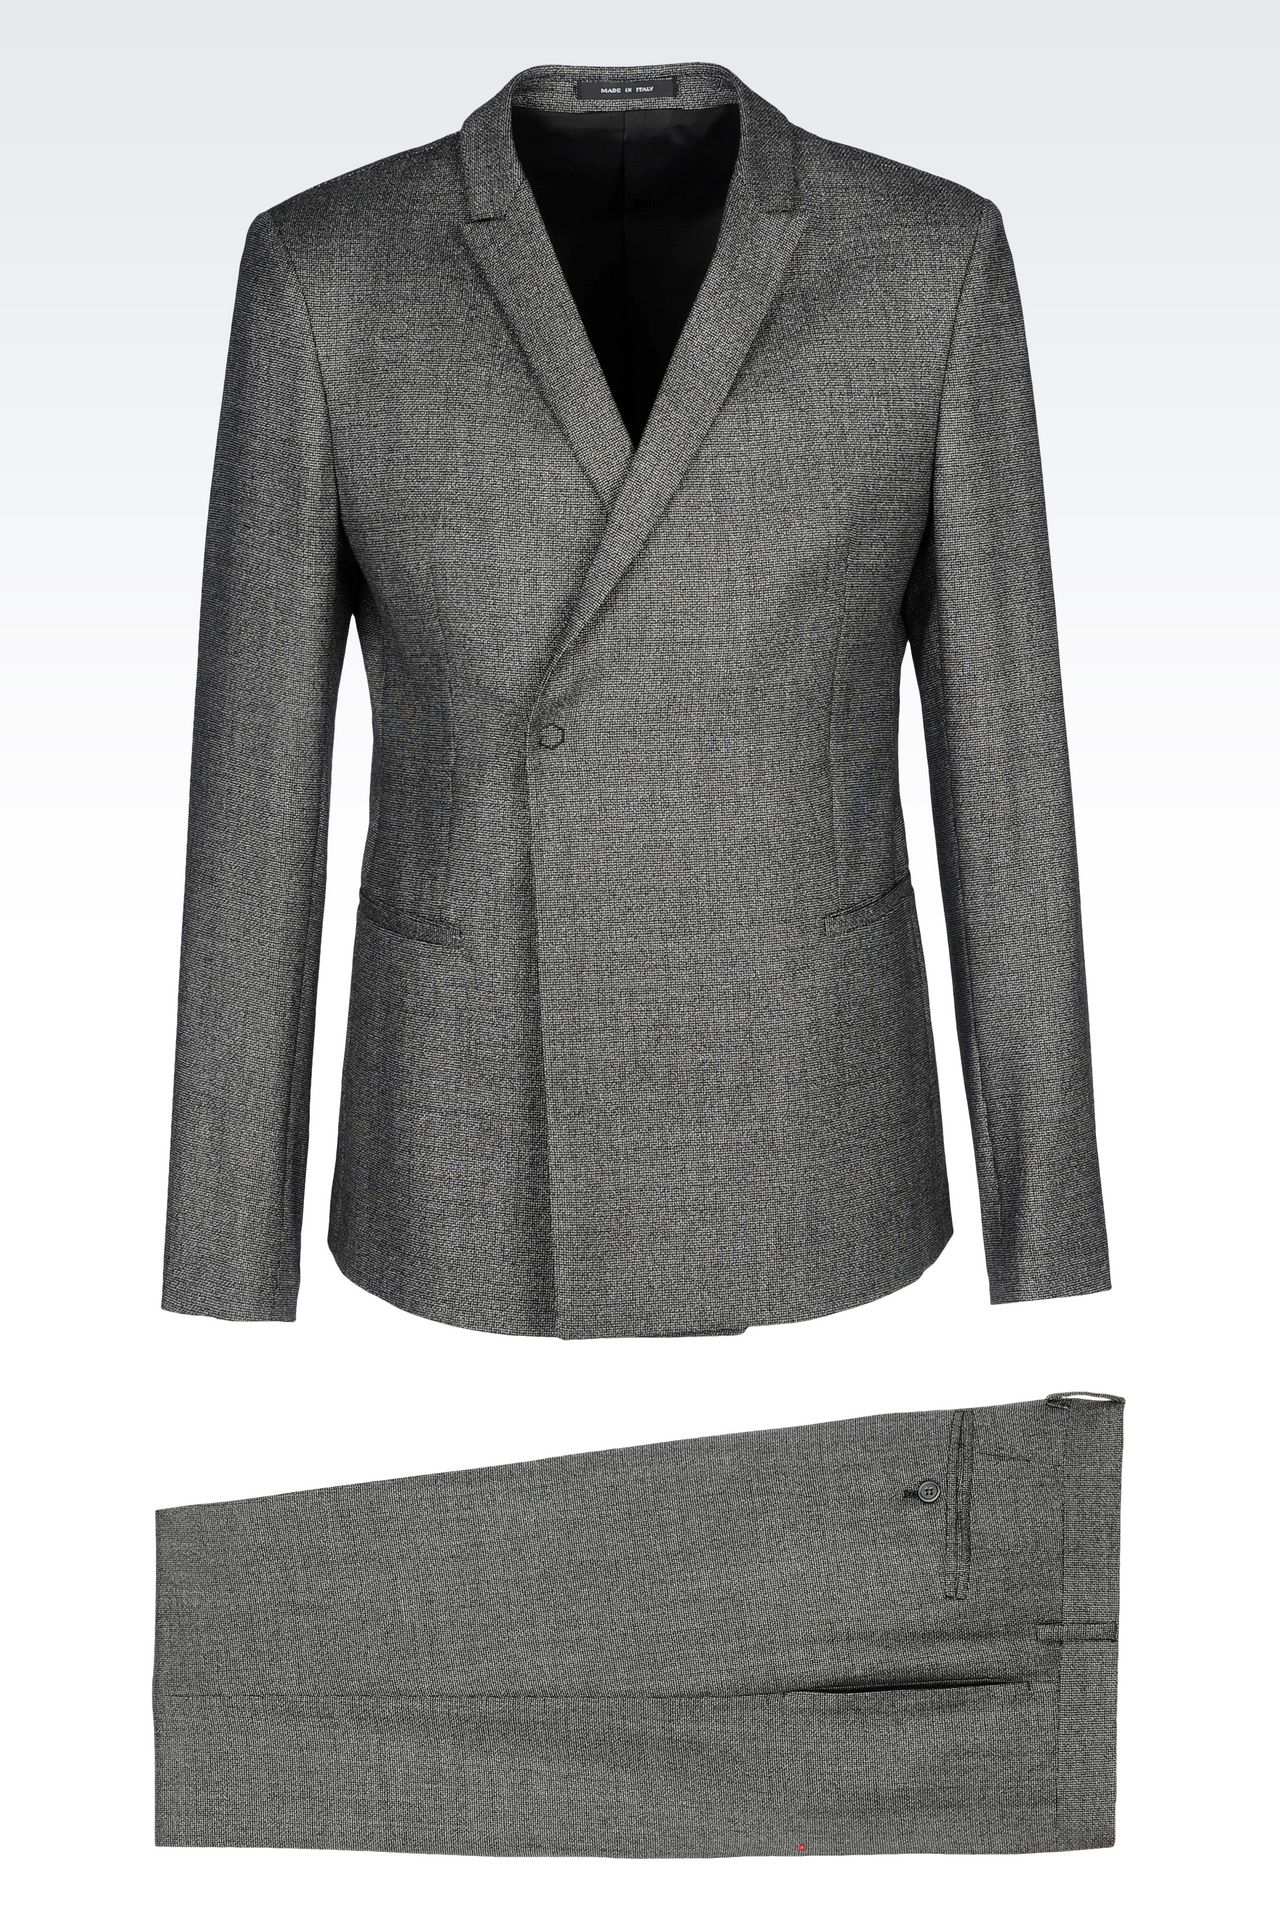 Emporio Armani Men DOUBLE-BREASTED SUIT IN MICRO PATTERNED WOOL